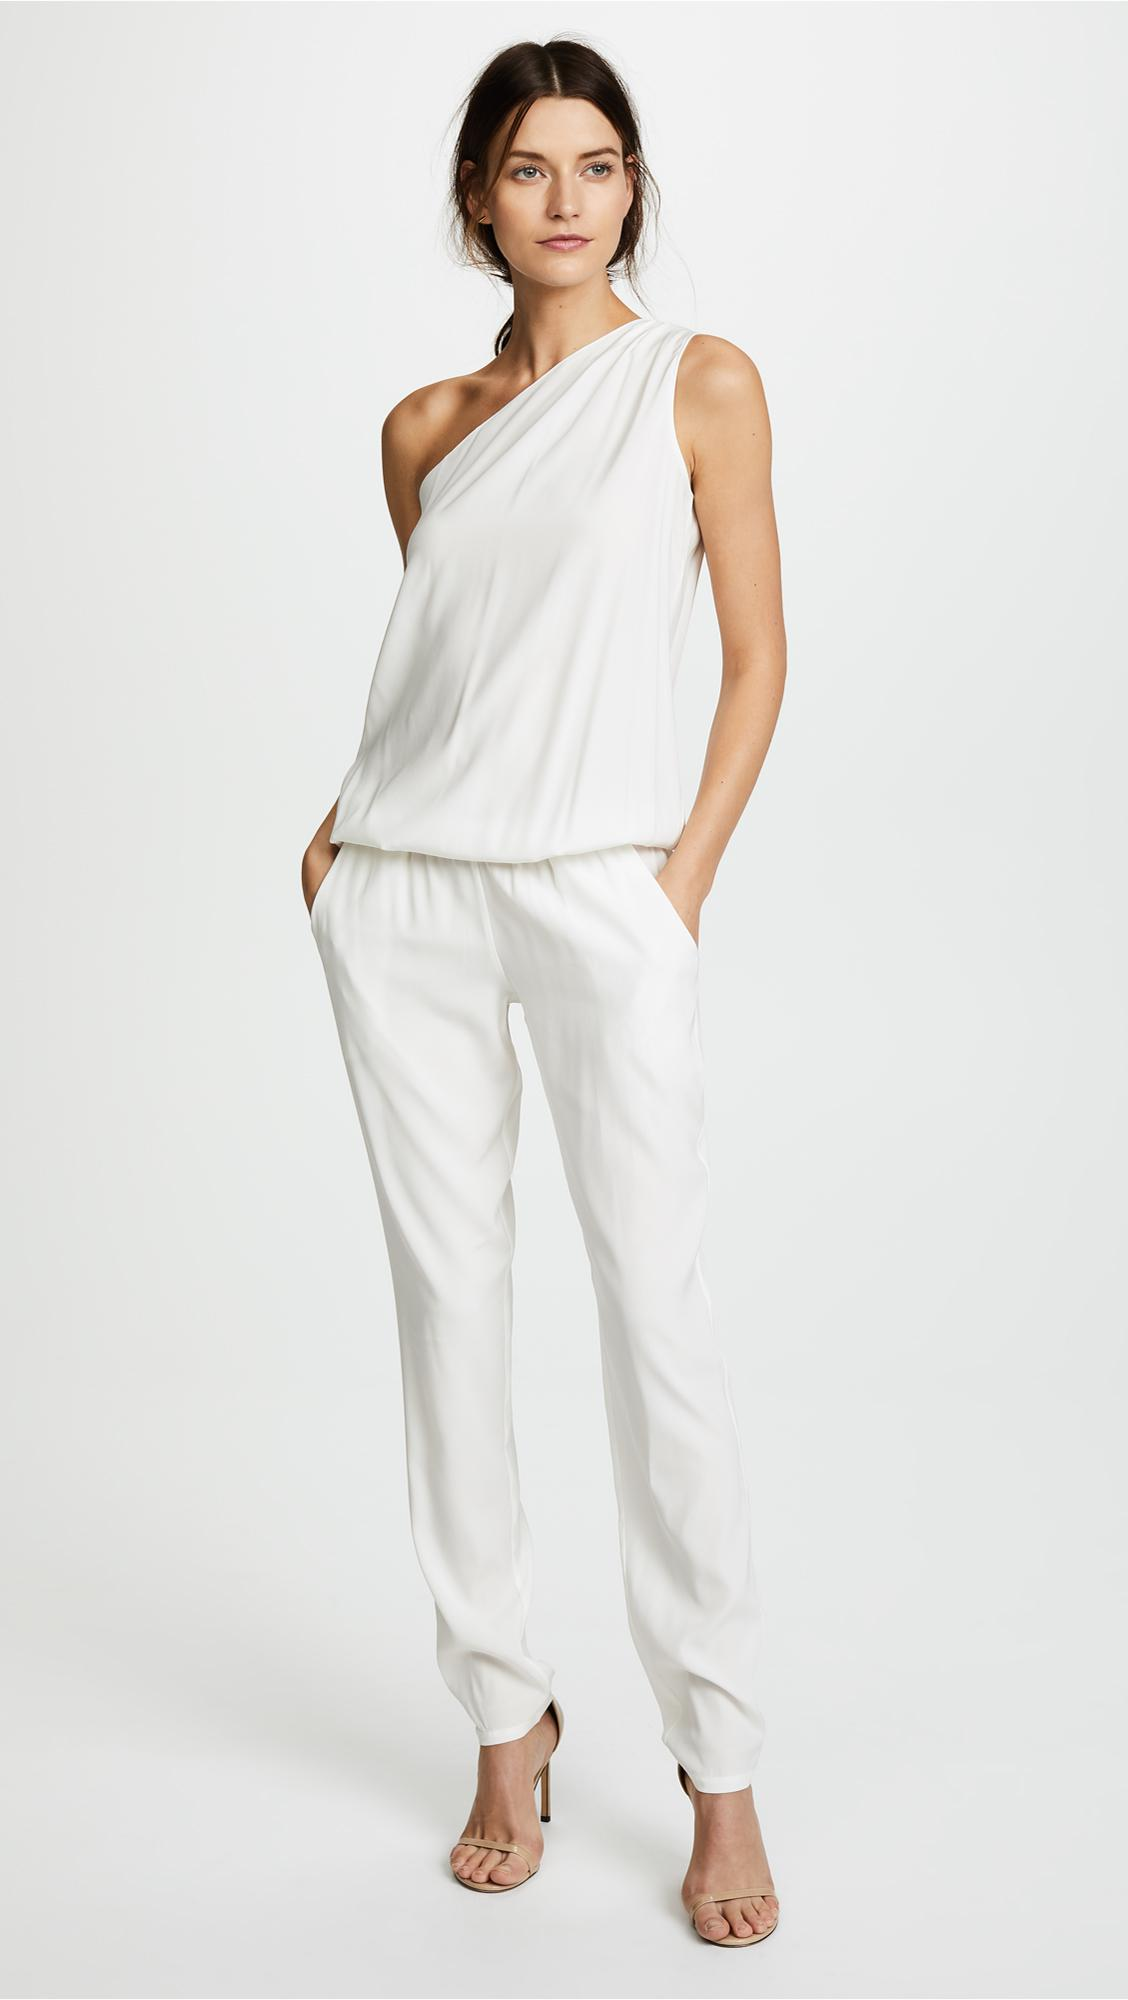 d6de57666d61 Lyst - Ramy Brook Lulu One Shoulder Jumpsuit in White